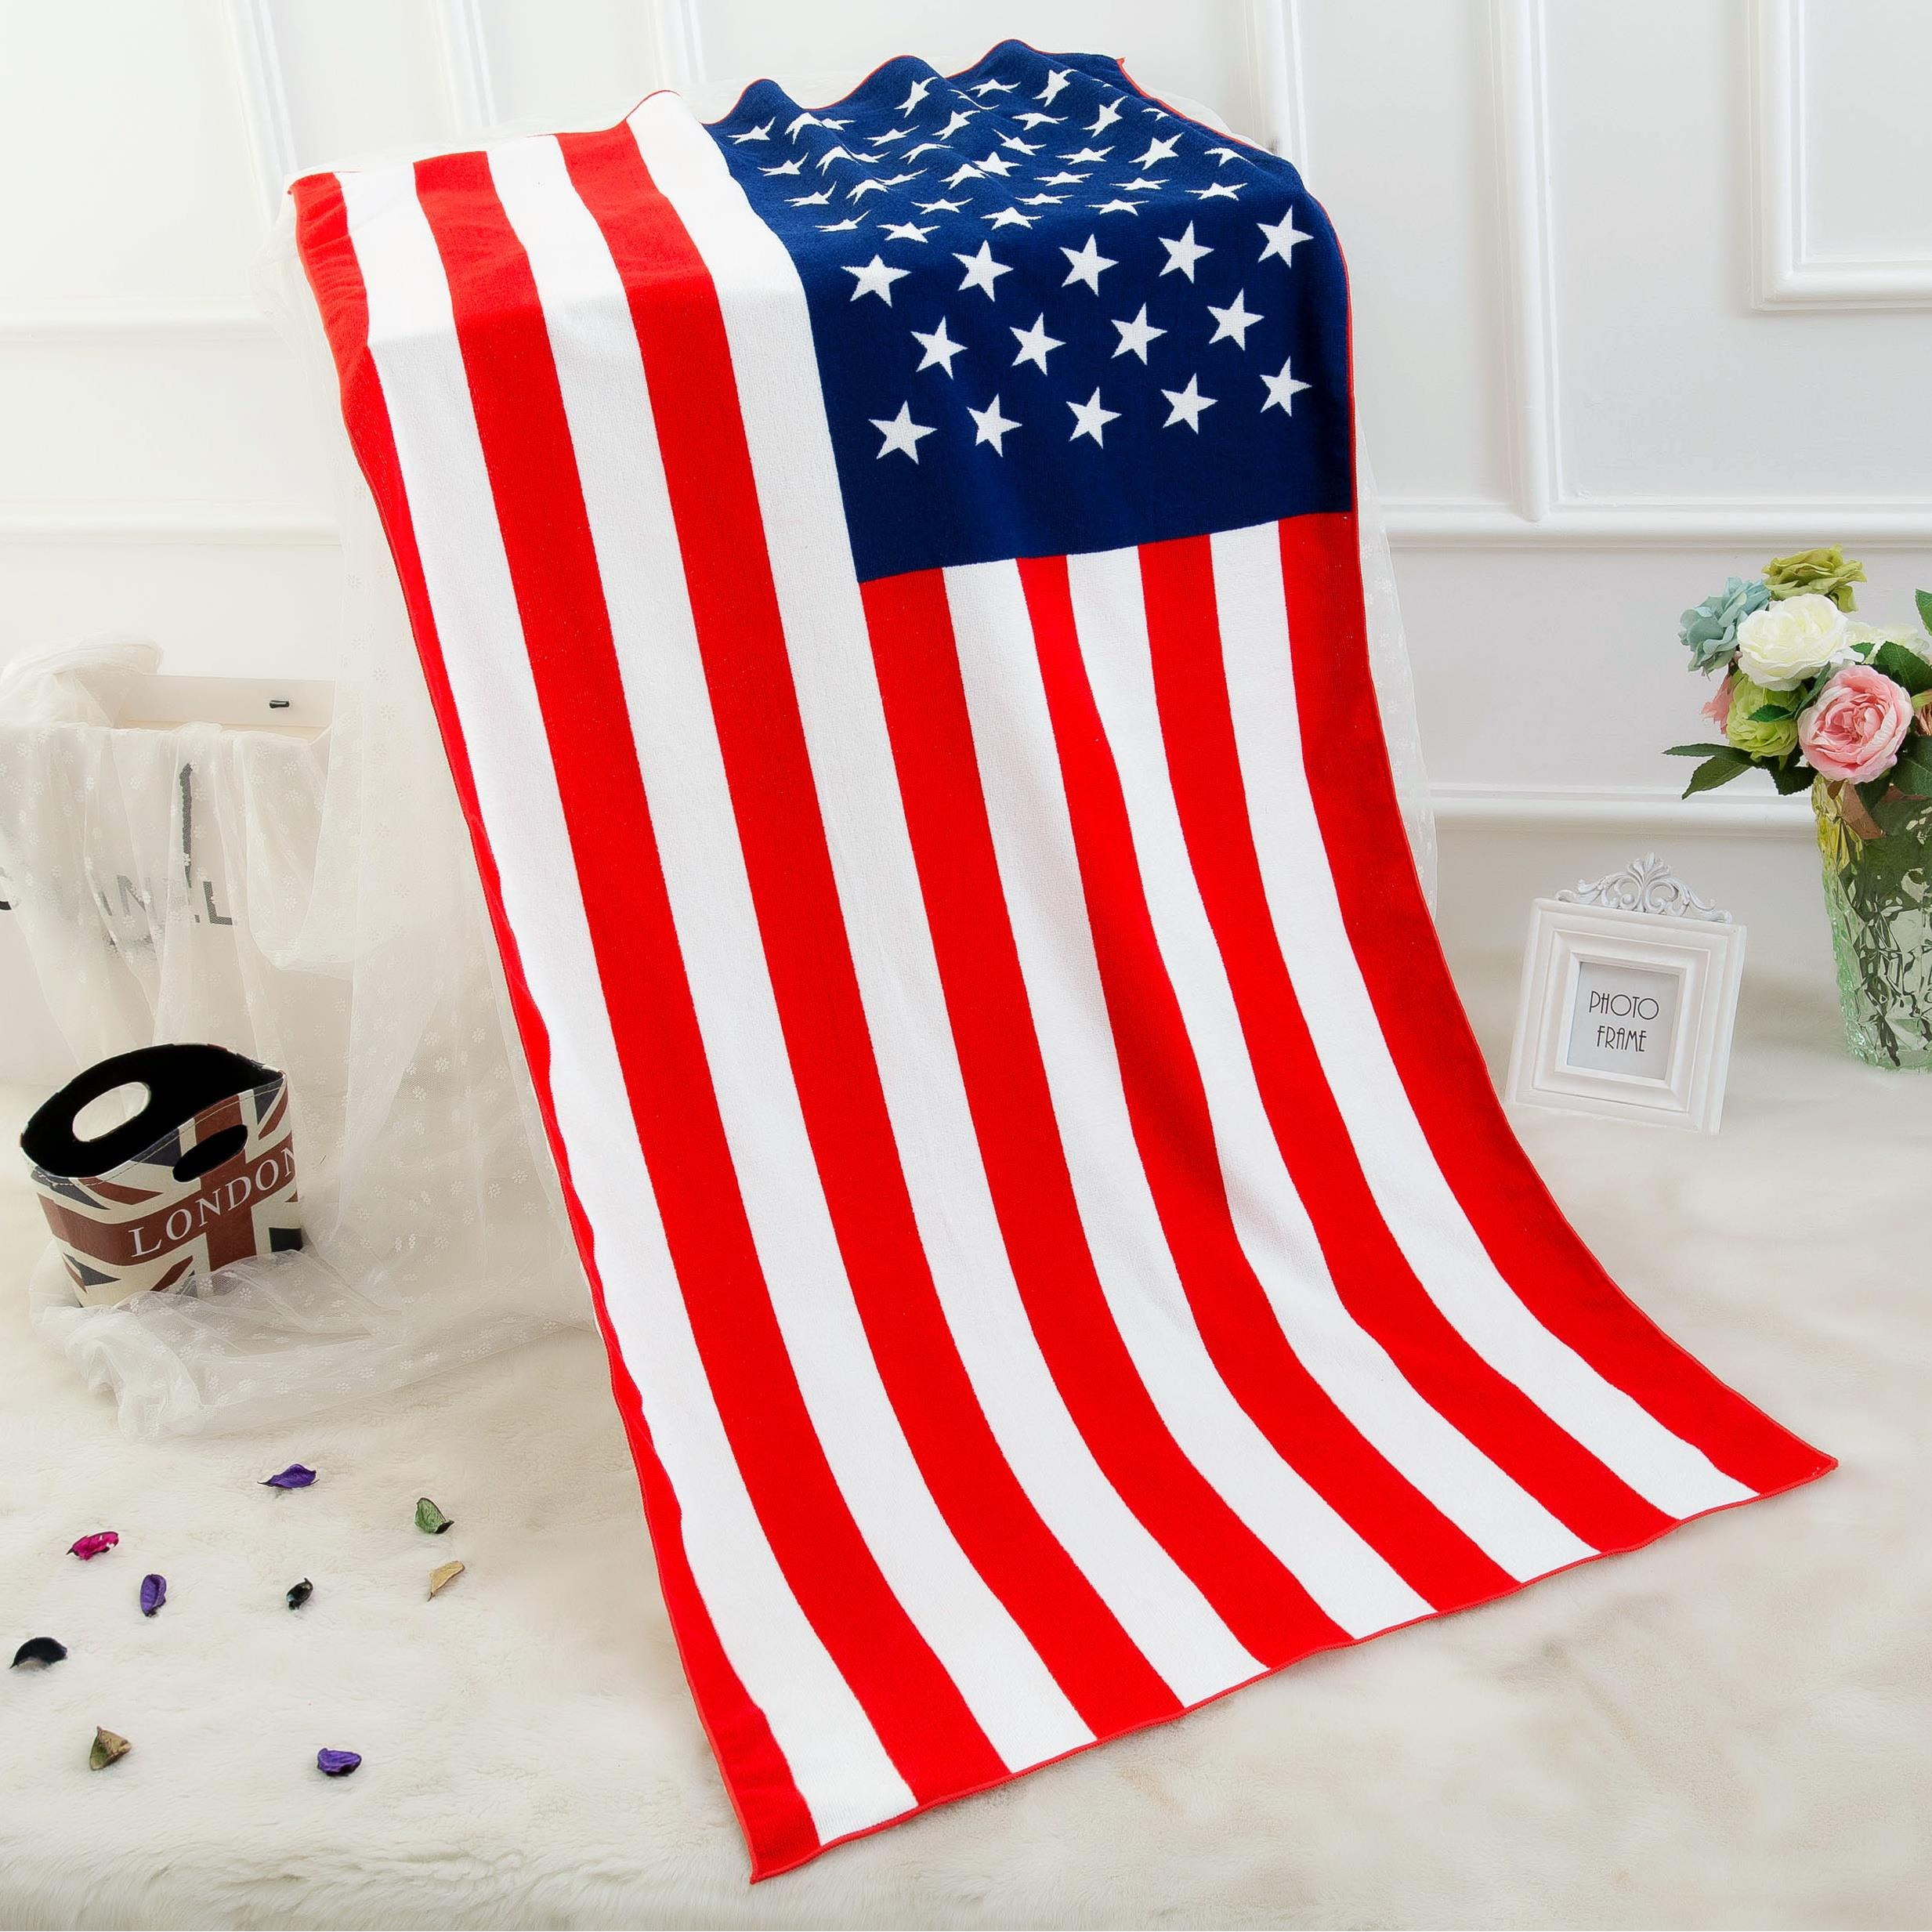 Top 10 Largest Sec Flag List And Get Free Shipping A52